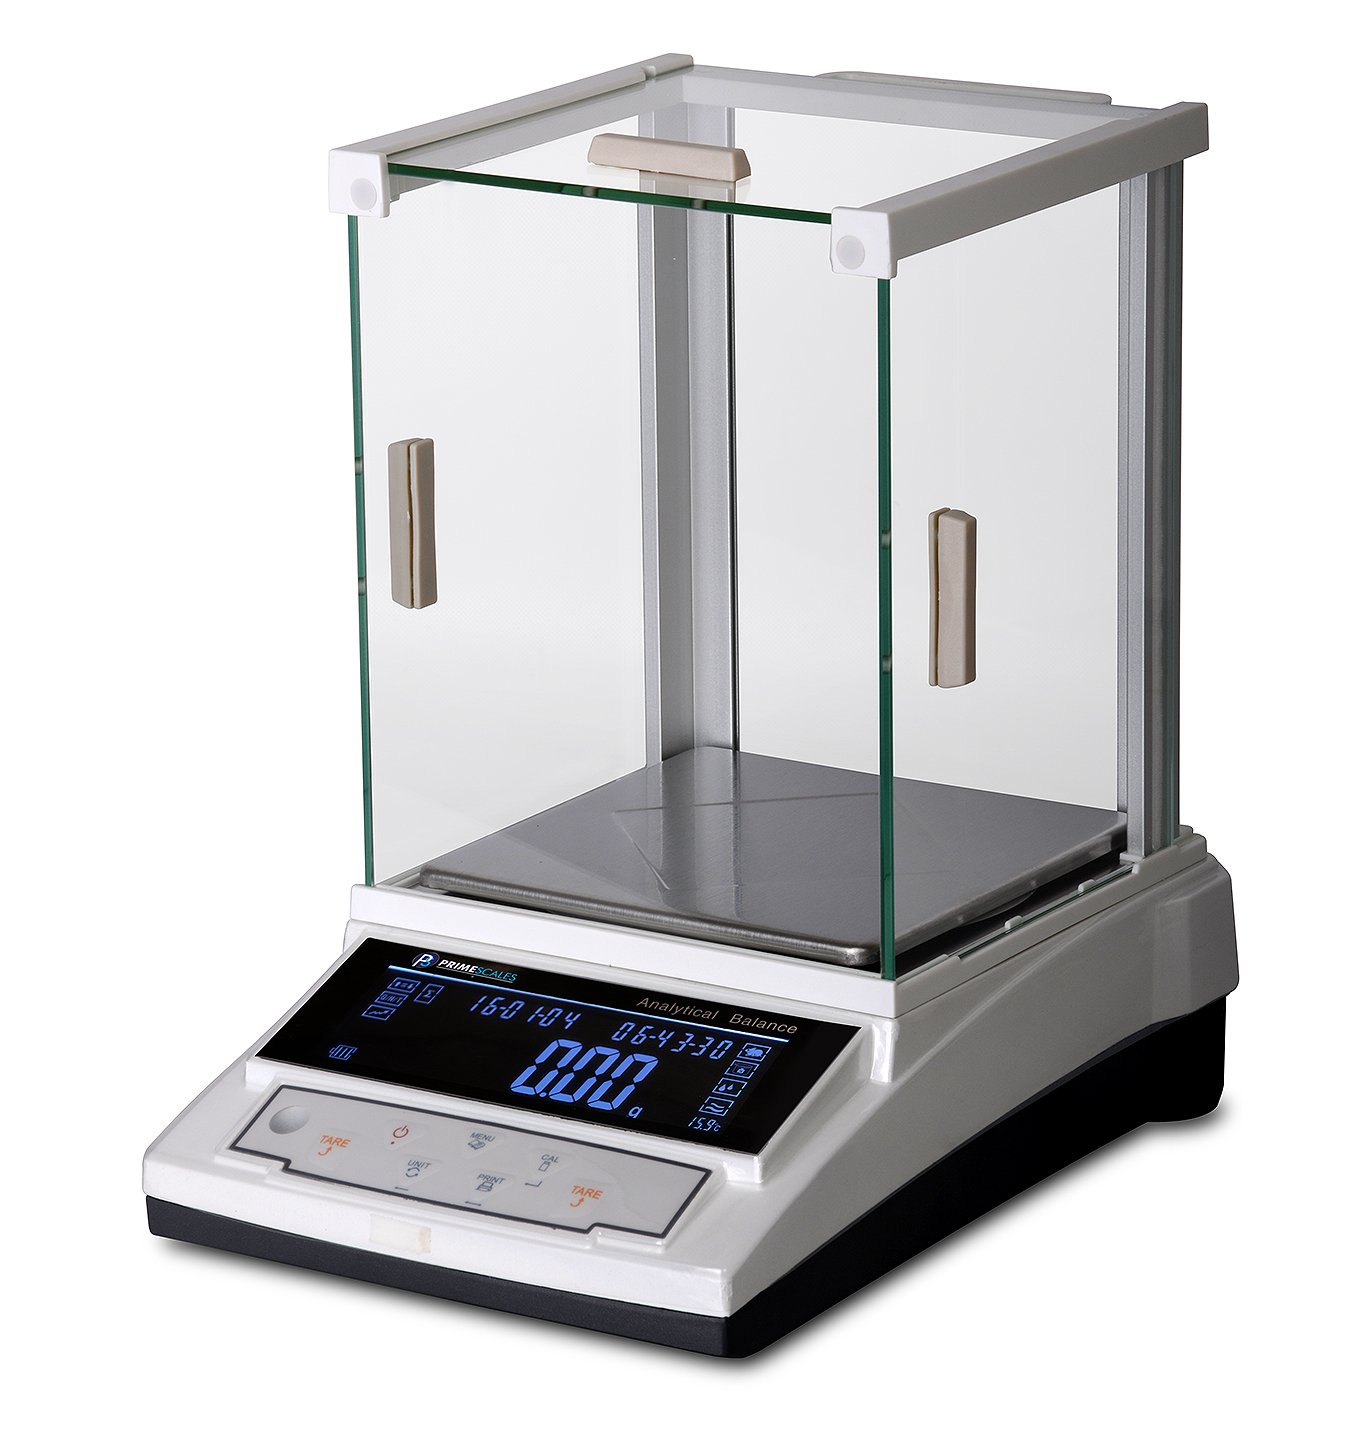 PS-B2002 Balance Scale 2000g/0.01g Balance Scale with 14 Weighing Units